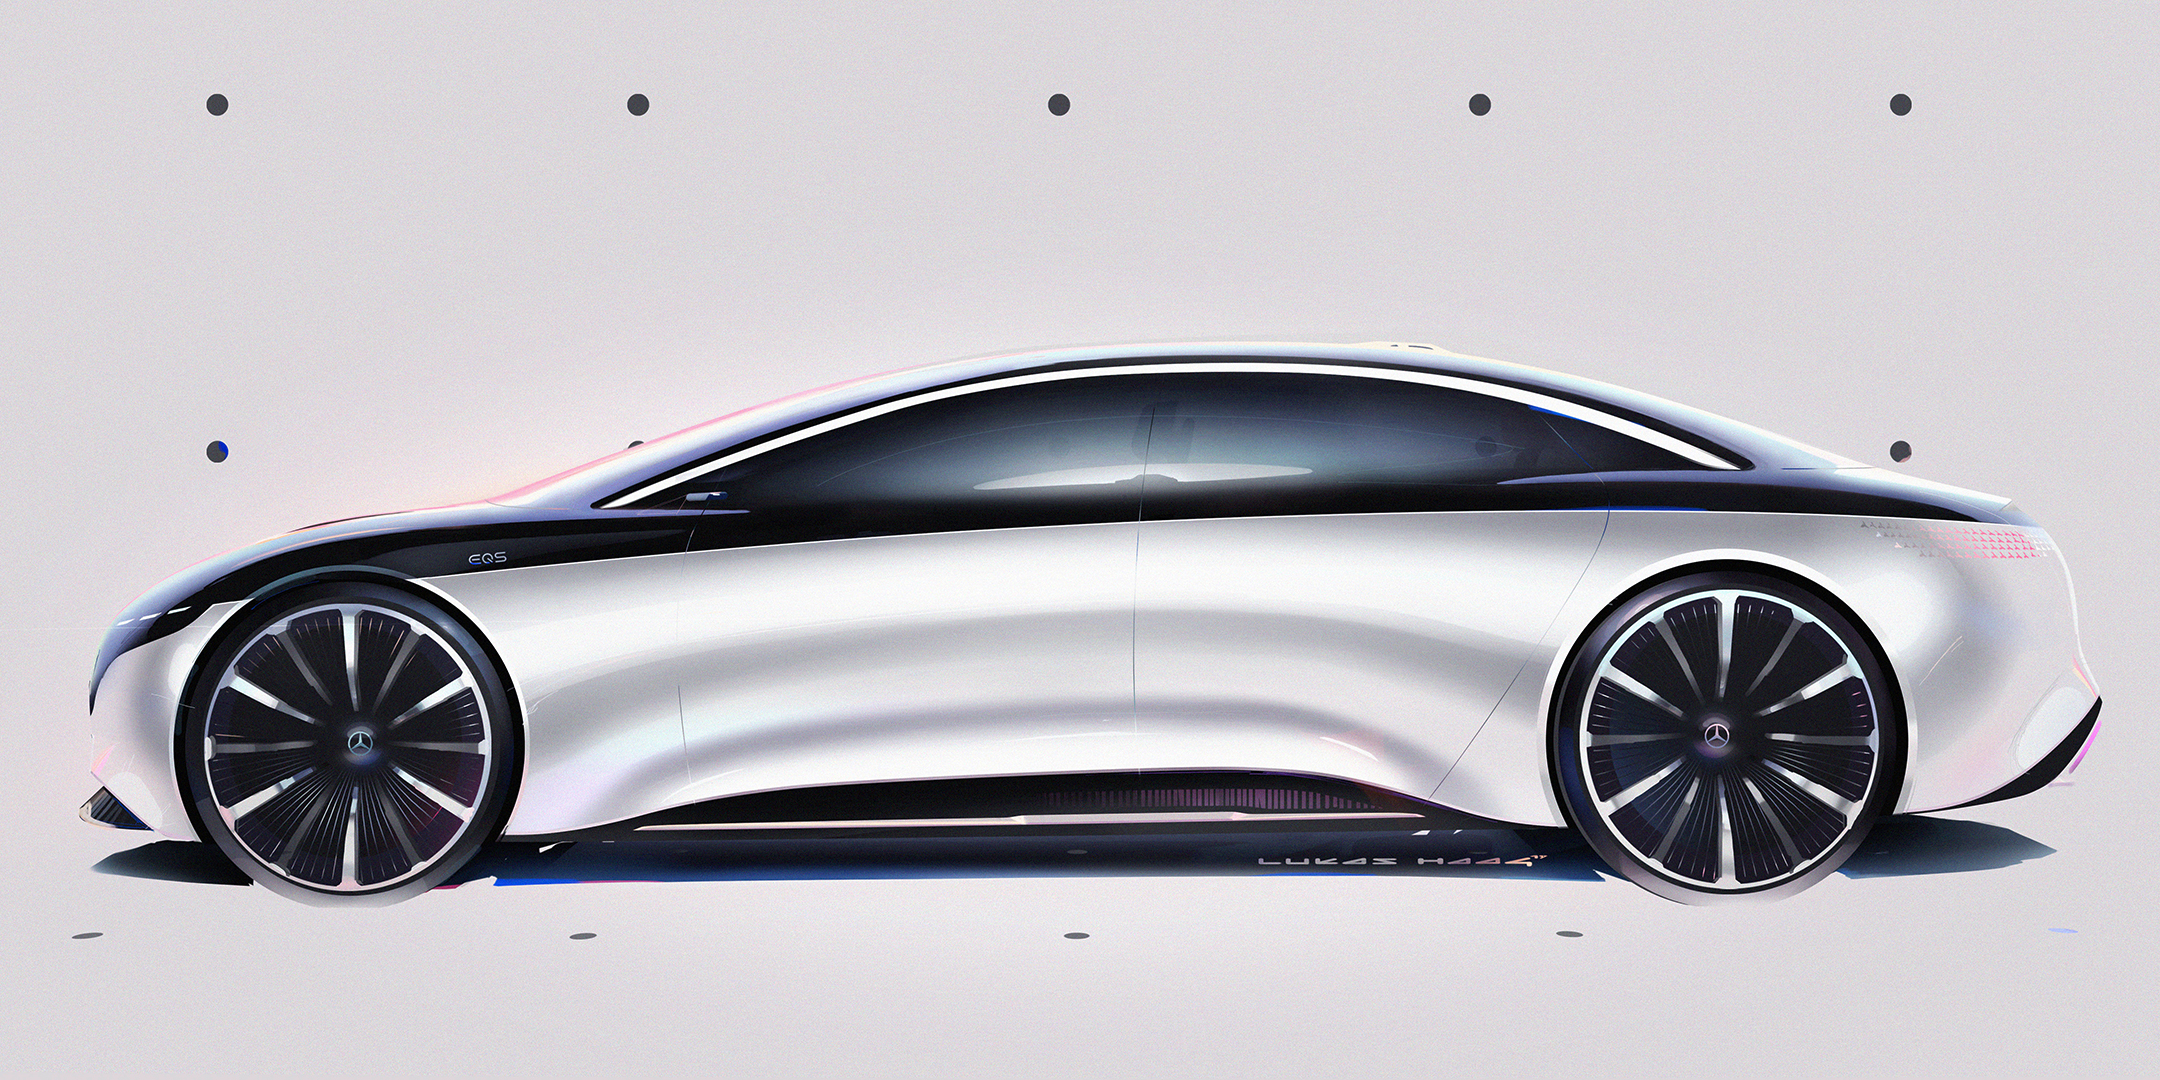 Mercedes-Benz Vision EQS show car - 2020 - sketch - side-face / profil